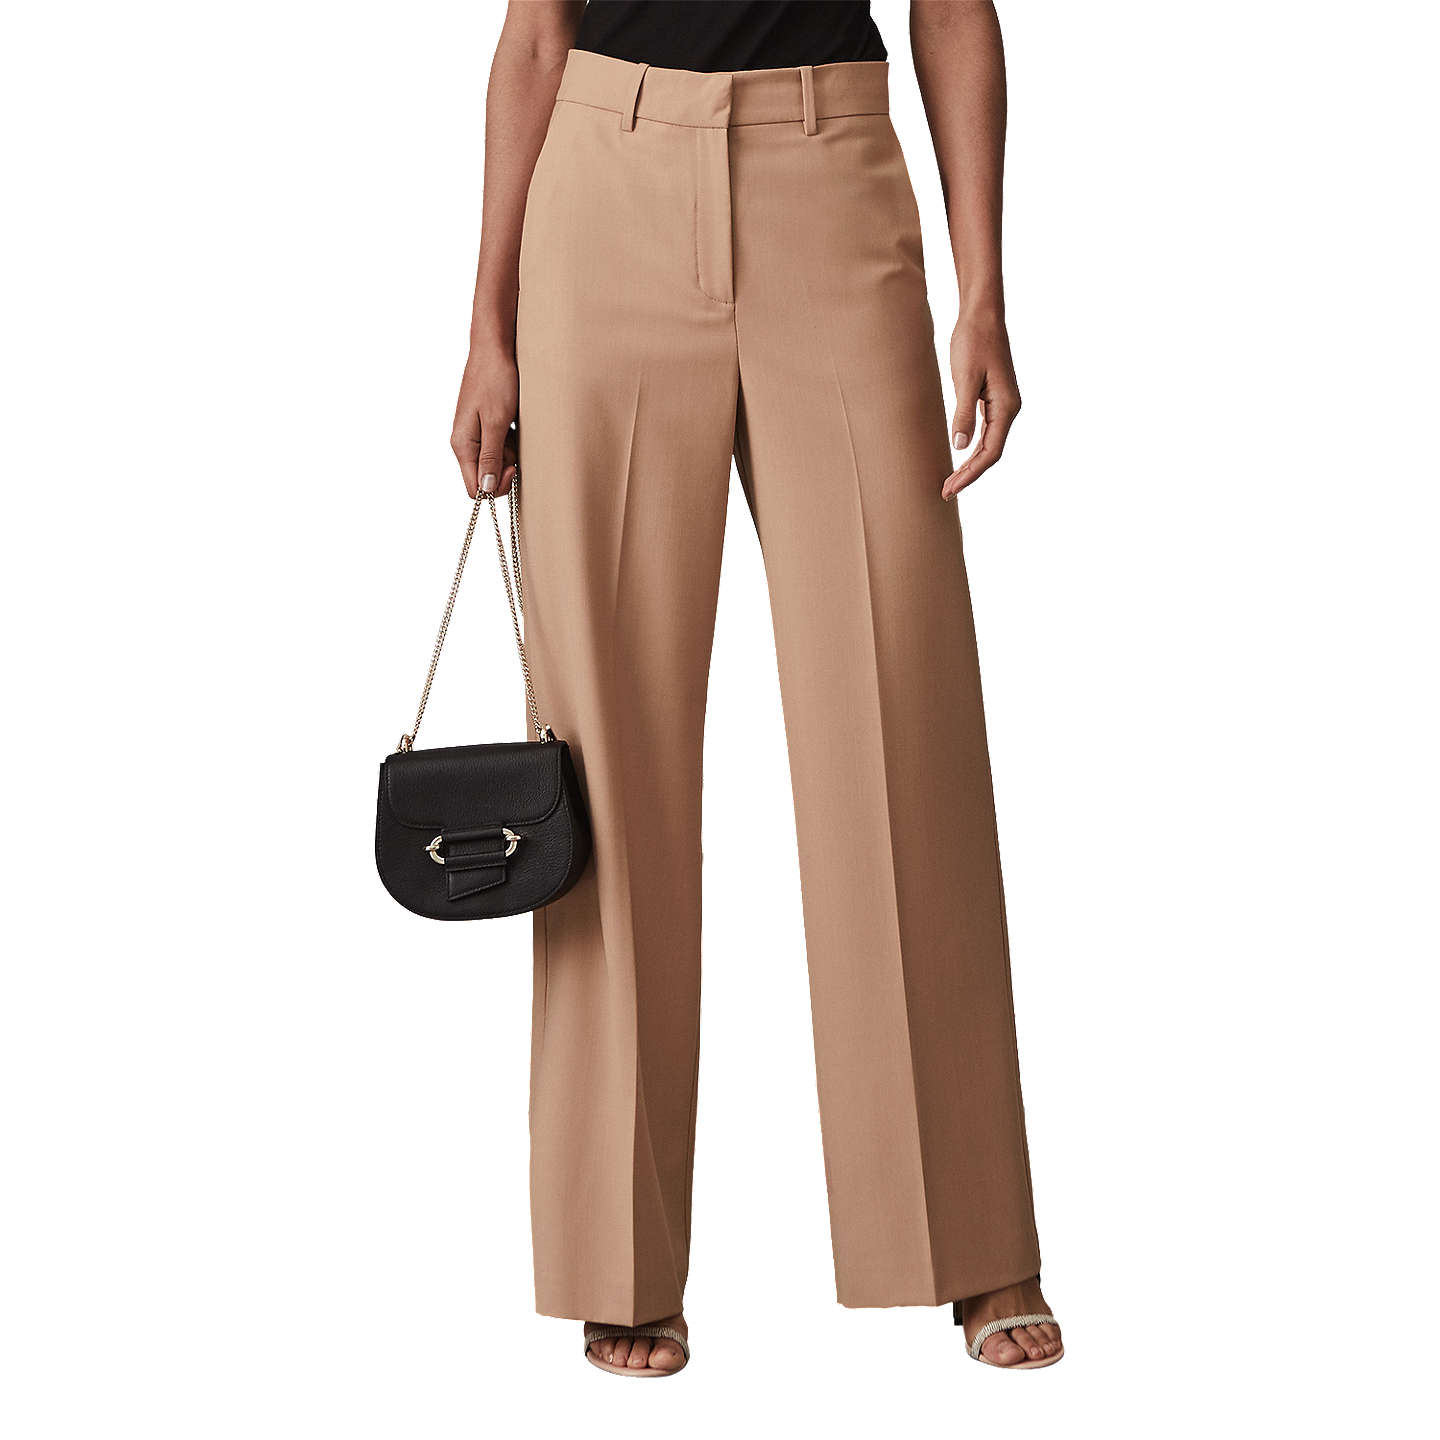 Anakin - Wide Leg Trousers in Apricot, Womens, Size 10 Reiss